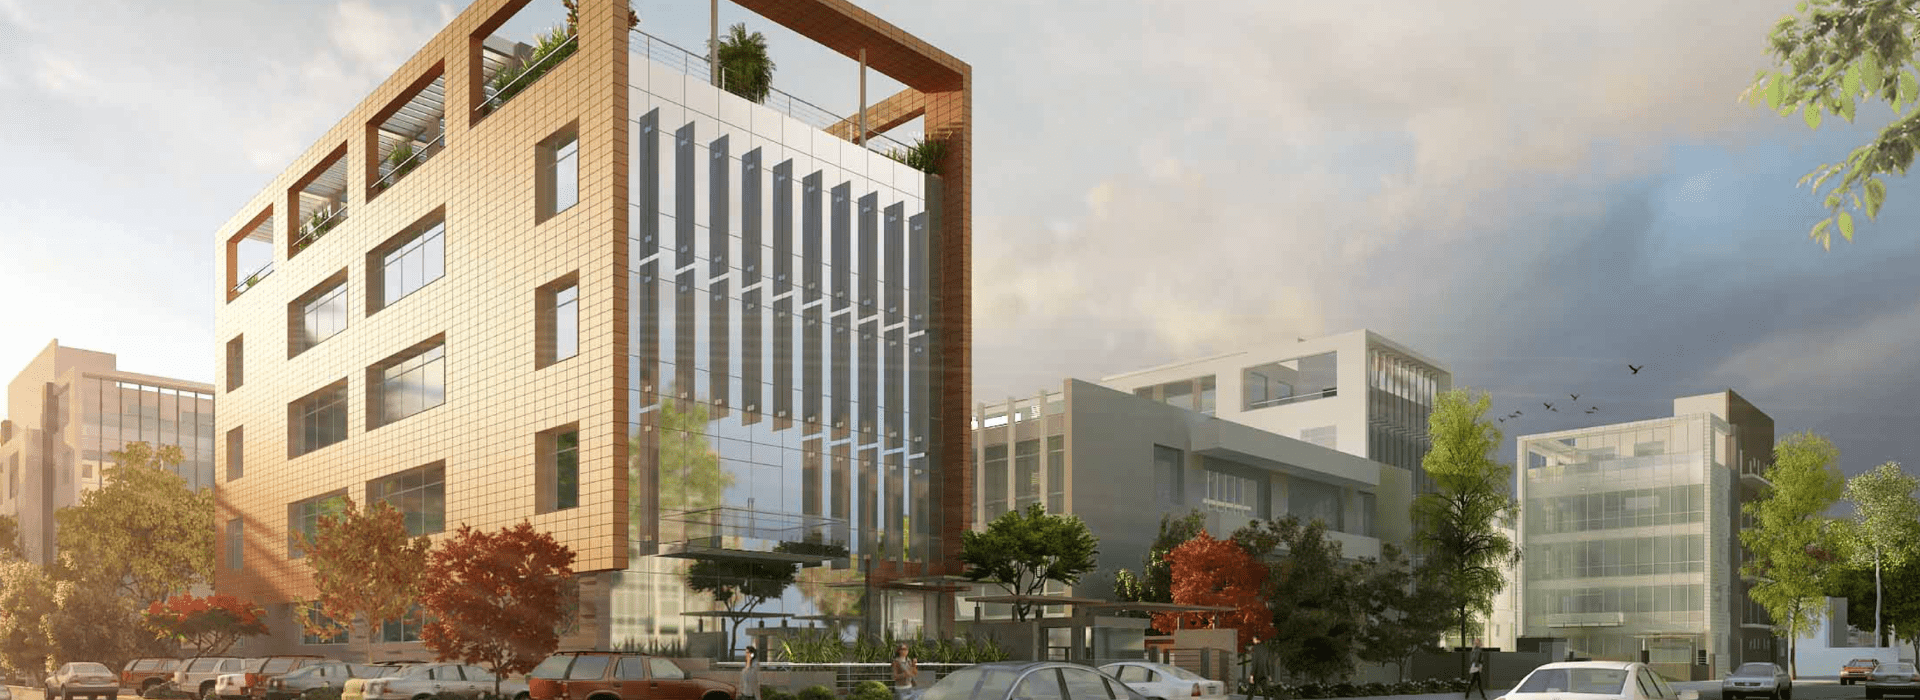 Coworking spaces from InstaOffice in Udyog Vihar, Gurgaon